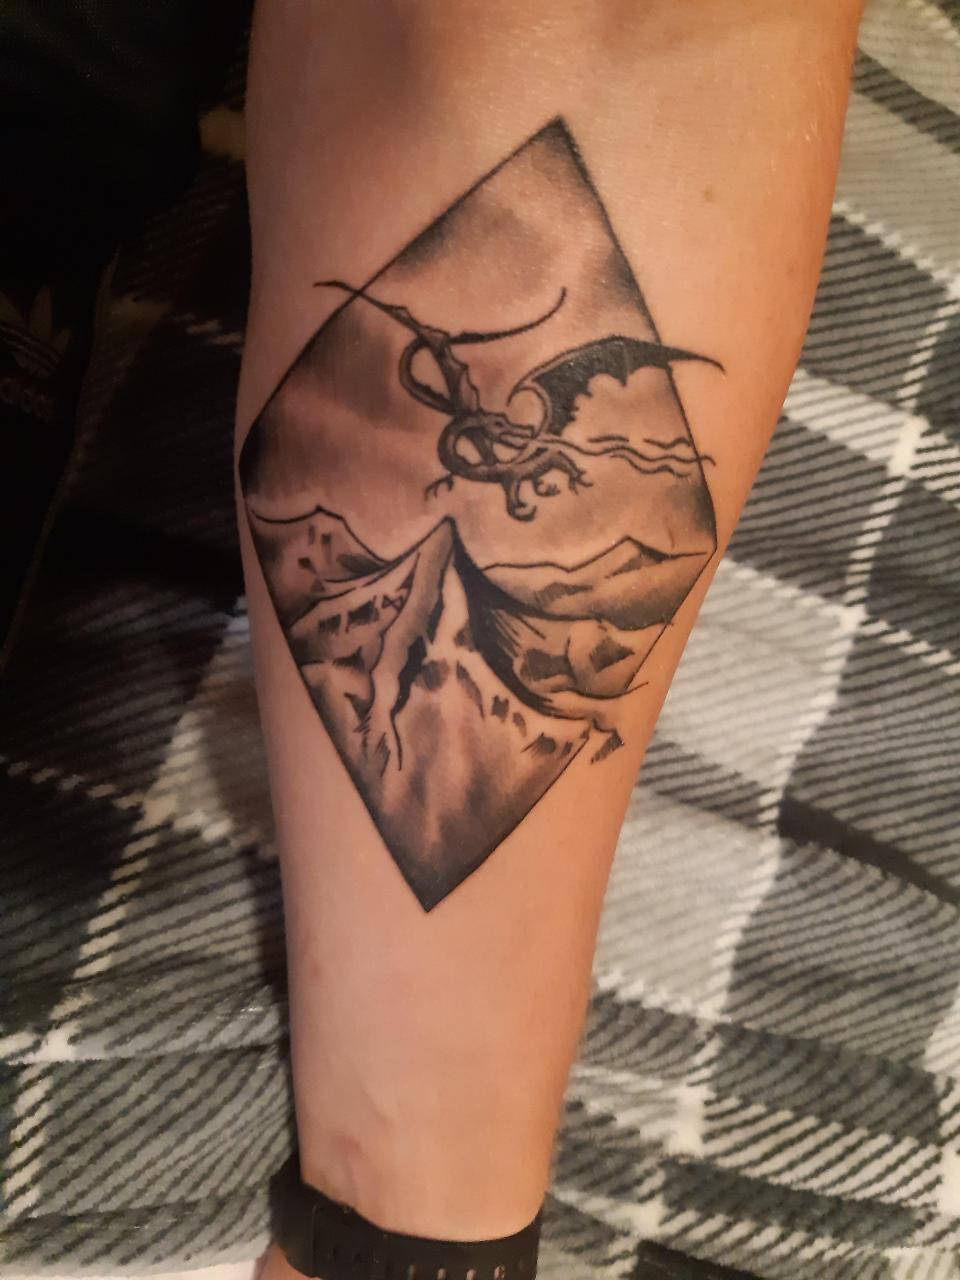 Smaug and The Lonely Mountain (Looks warped because of the way it wraps around my arm, but is actually okay). Grant Mitchell, London, UK